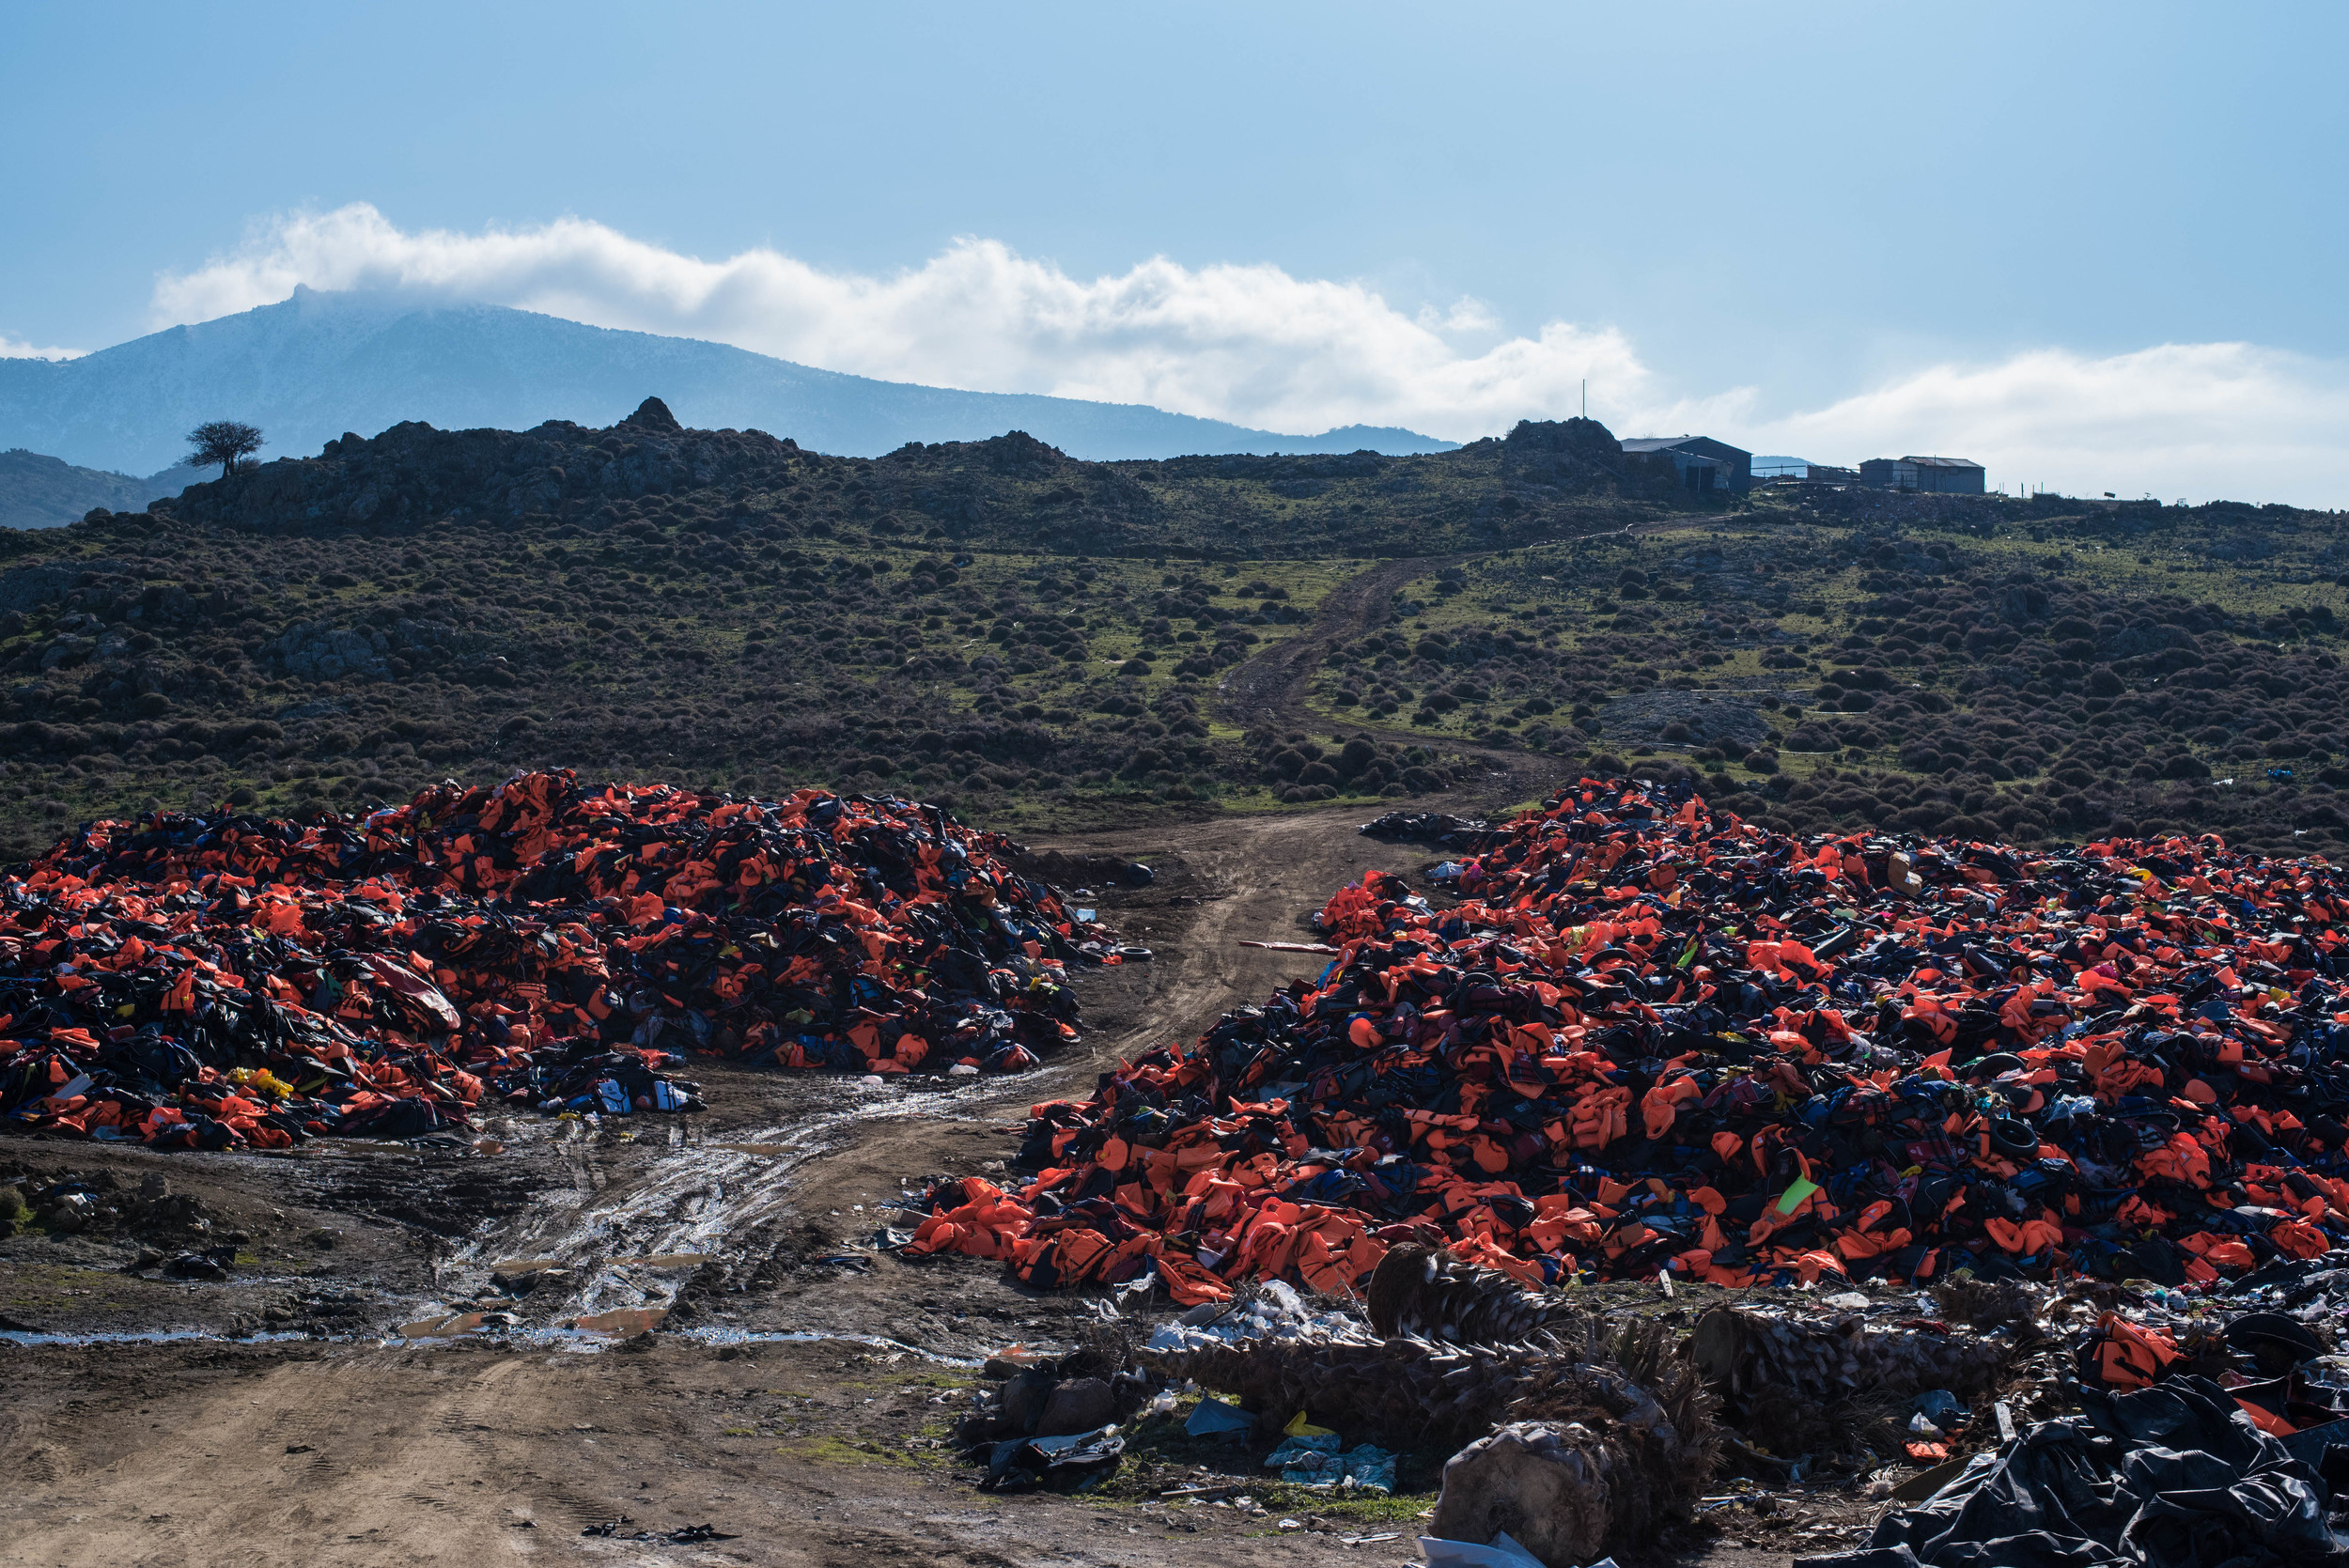 With every boat that comes in, the environmental impact of the refugee crisis becomes more pronounced. This hilltop near the town of Molyvos on Lesvos has become a makeshift dump for fake life jackets, deflated dinghies, and other debris.